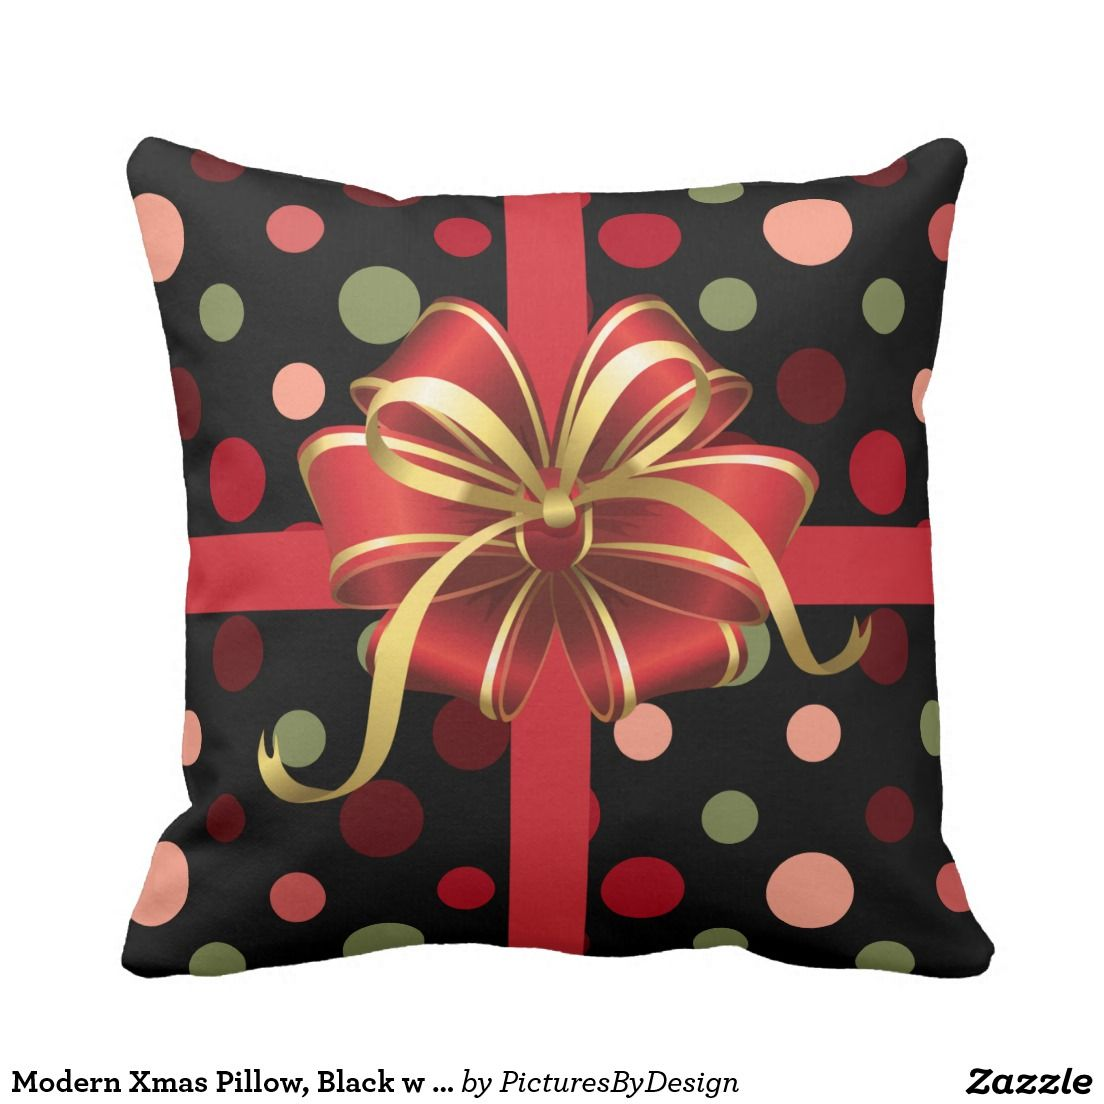 Modern xmas pillow black w polka dots u bow throw pillow